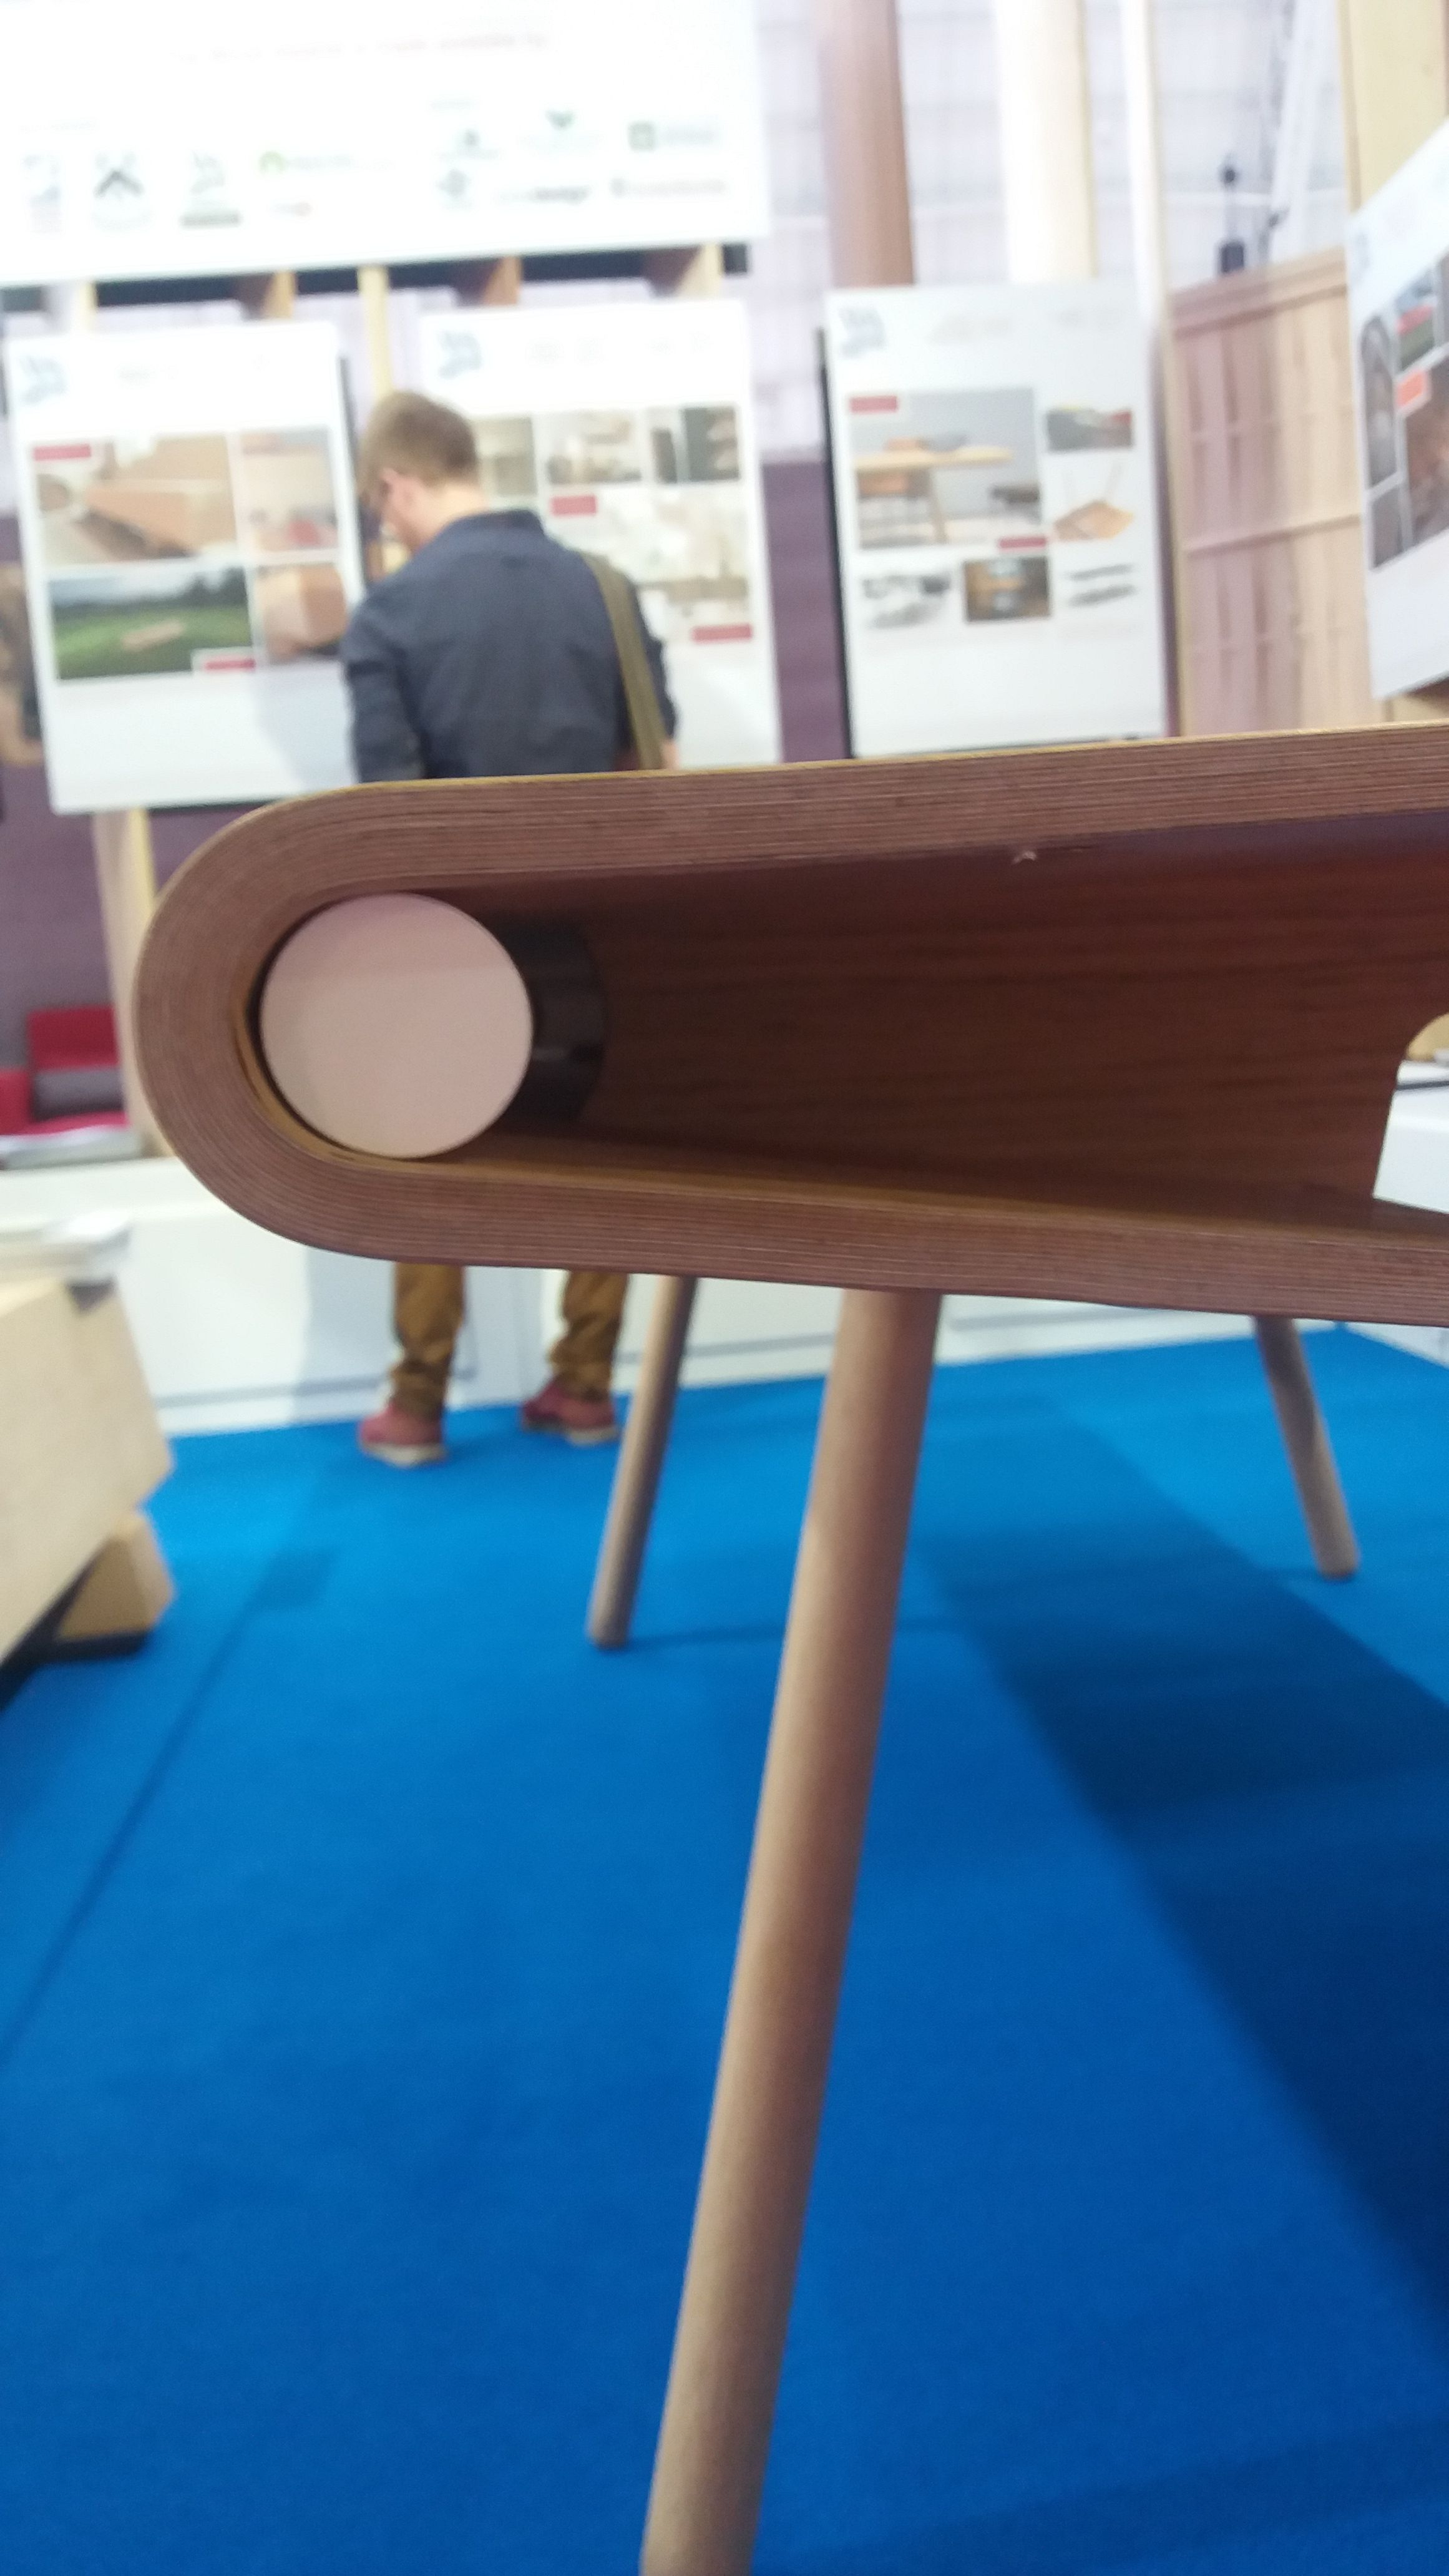 The wooden pole holding the pieces of the table together and allowing them to slide apart